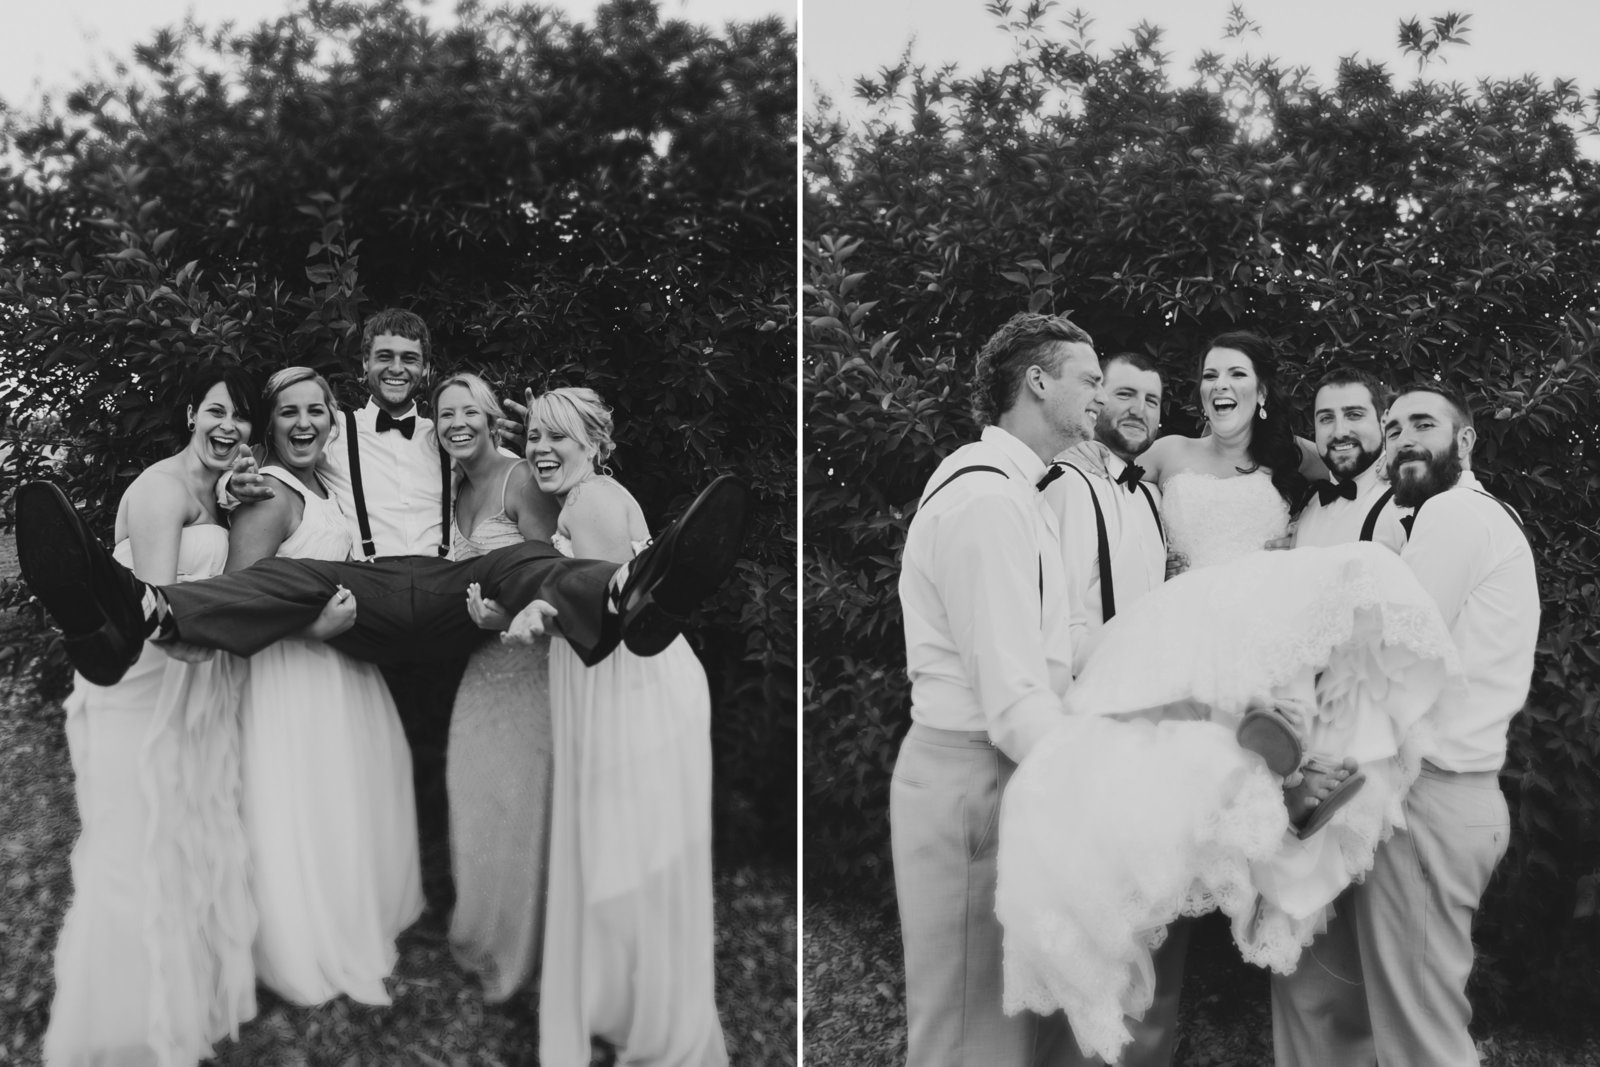 Fun bridal party photos of bridal party carrying bride and groom in black and white photo | Susie Moreno Photography